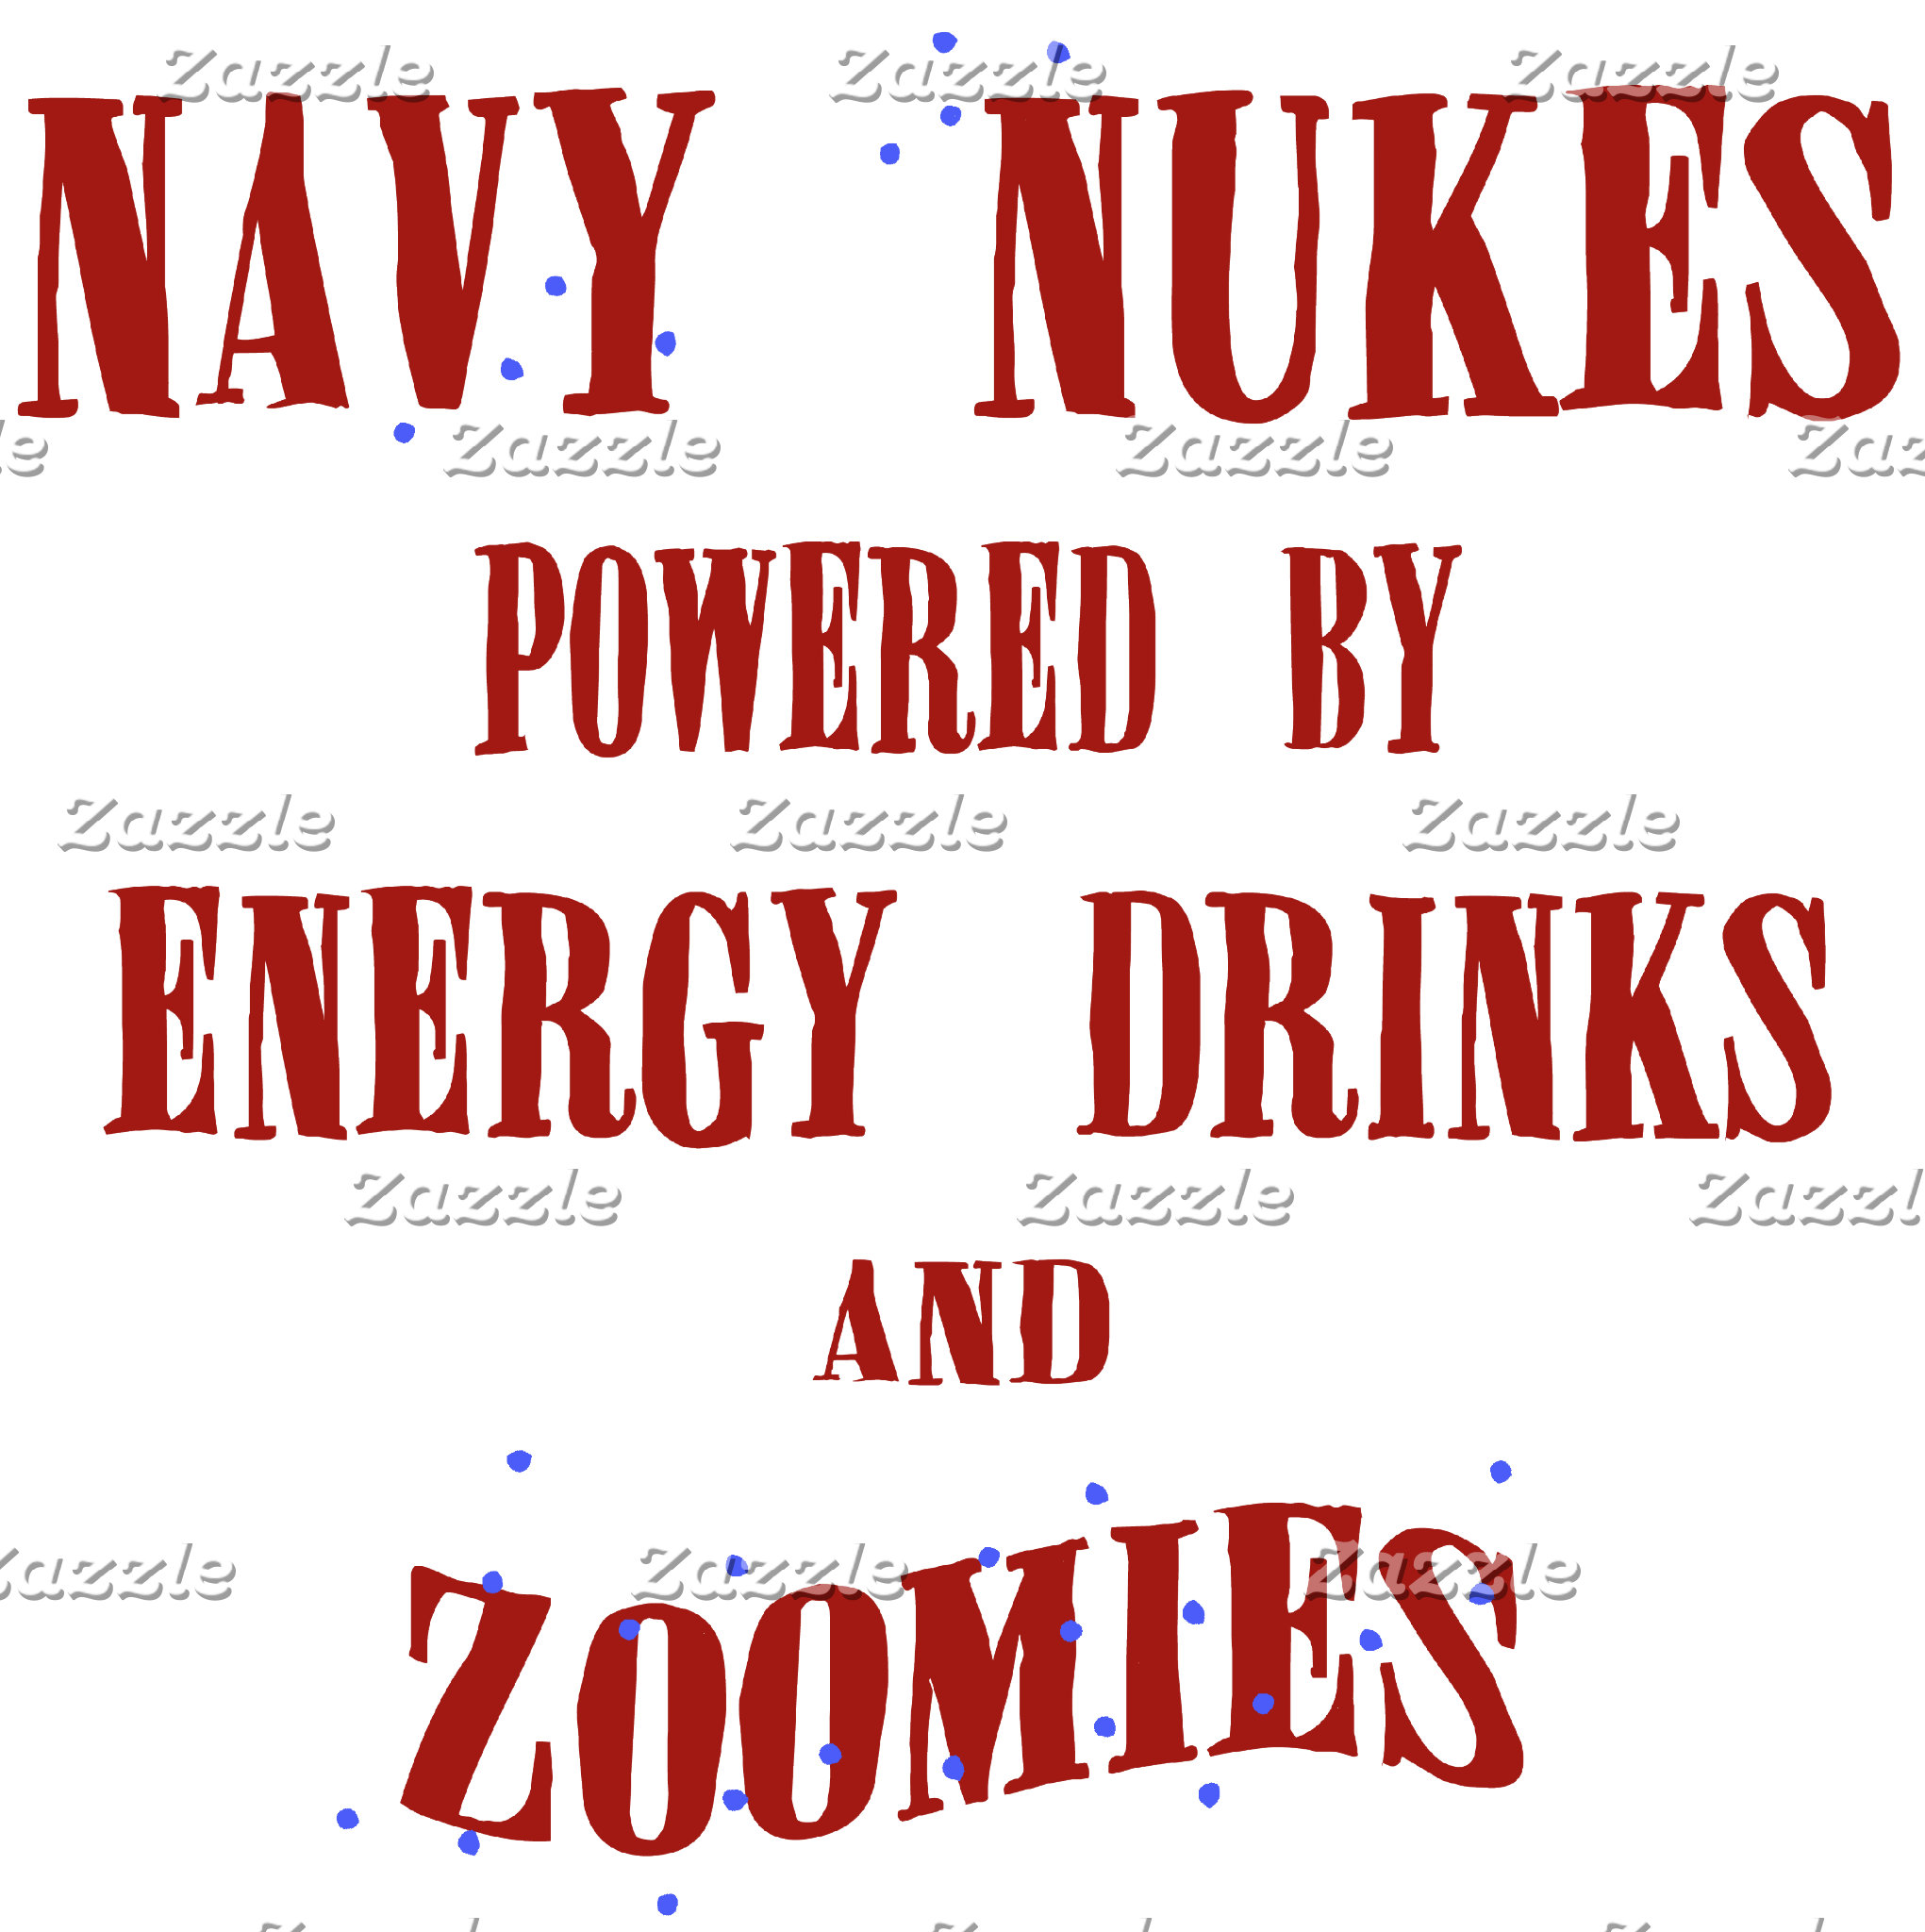 Navy Nukes Powered by Energy Drinks and Zoomies